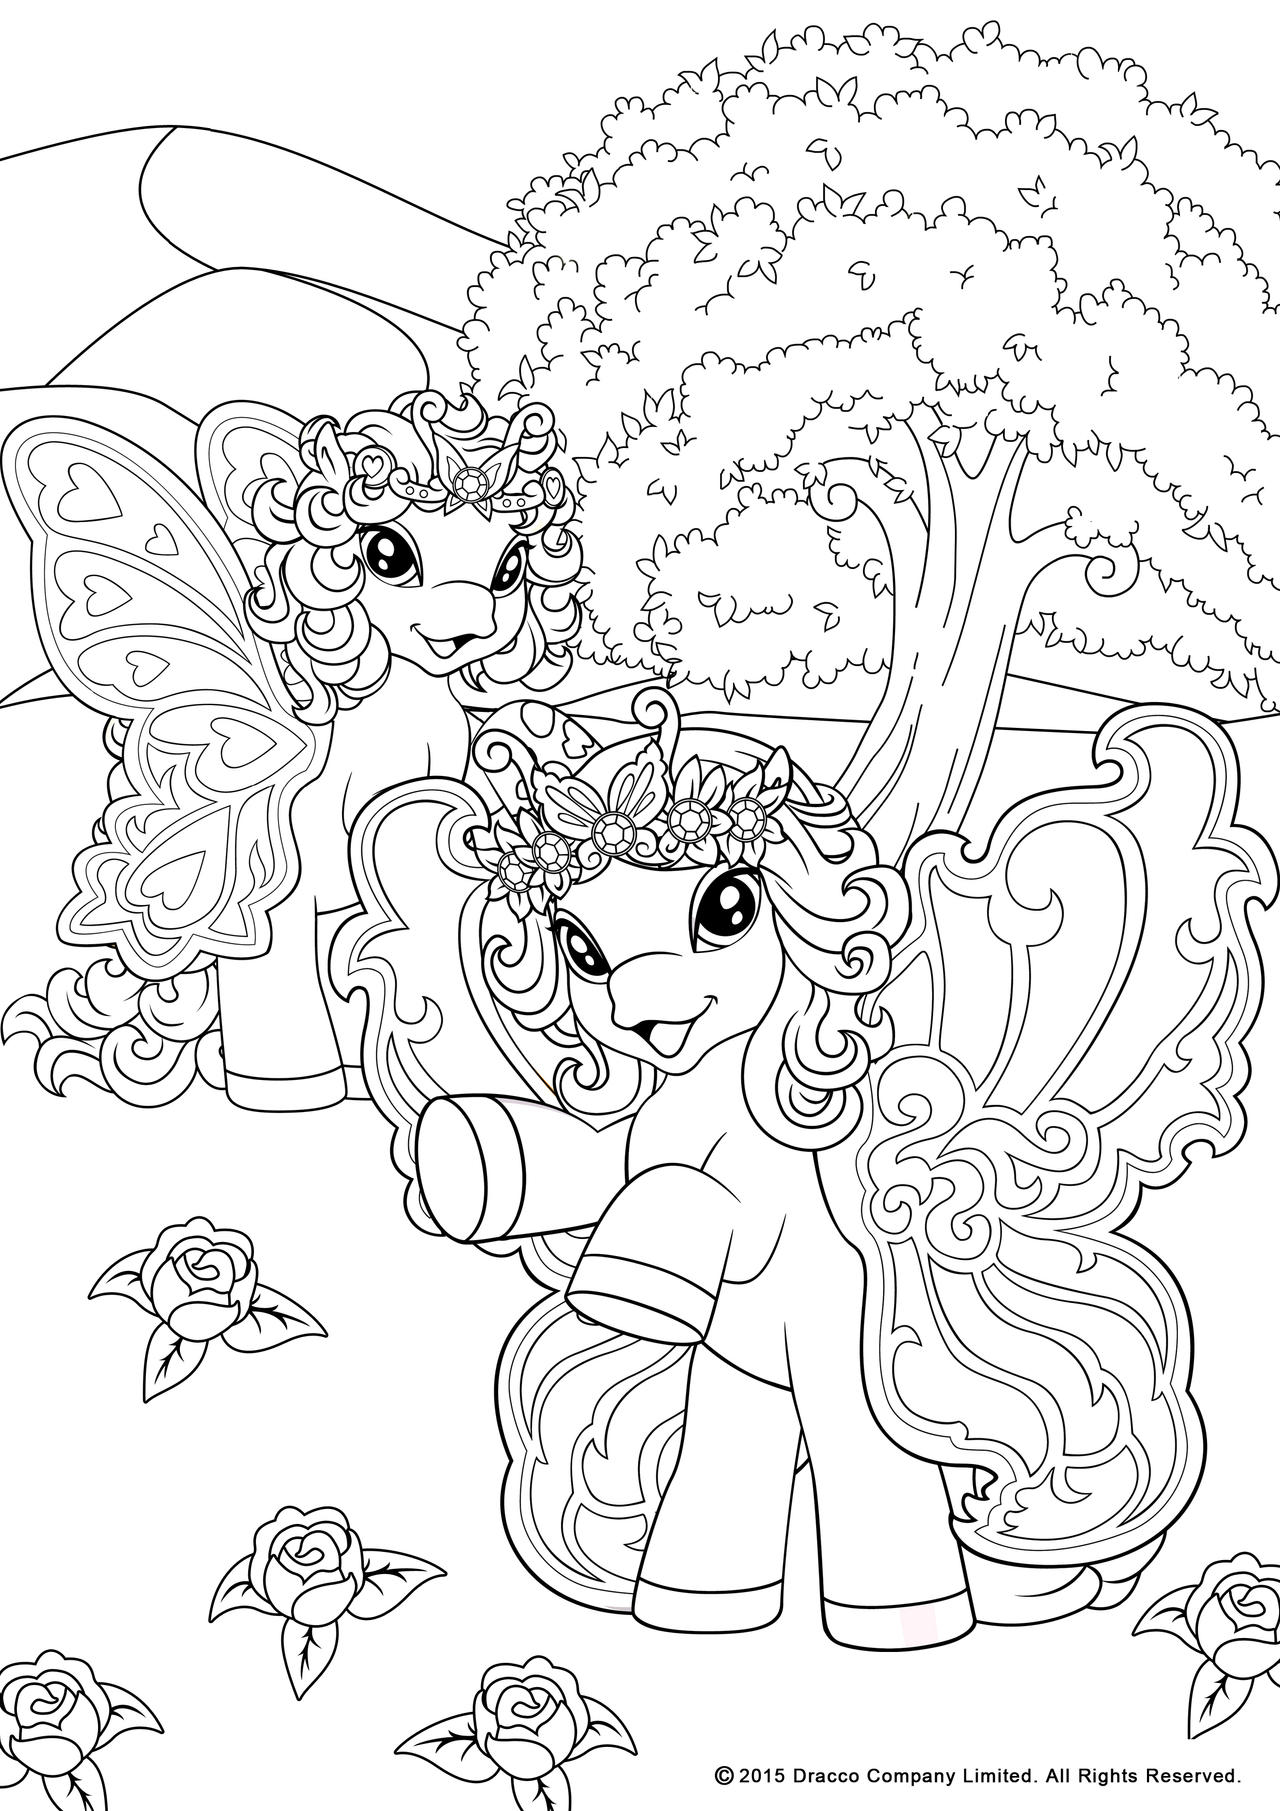 Fluttershy Sketch 262327157 further Mlp Fluttershy Coloring Sheet 297866364 likewise My Little Pony Print Inks 376987443 additionally Sitting Pony Base 331175813 moreover Derpy The Wonder Pony 340168444. on twilight sparkle wallpaper